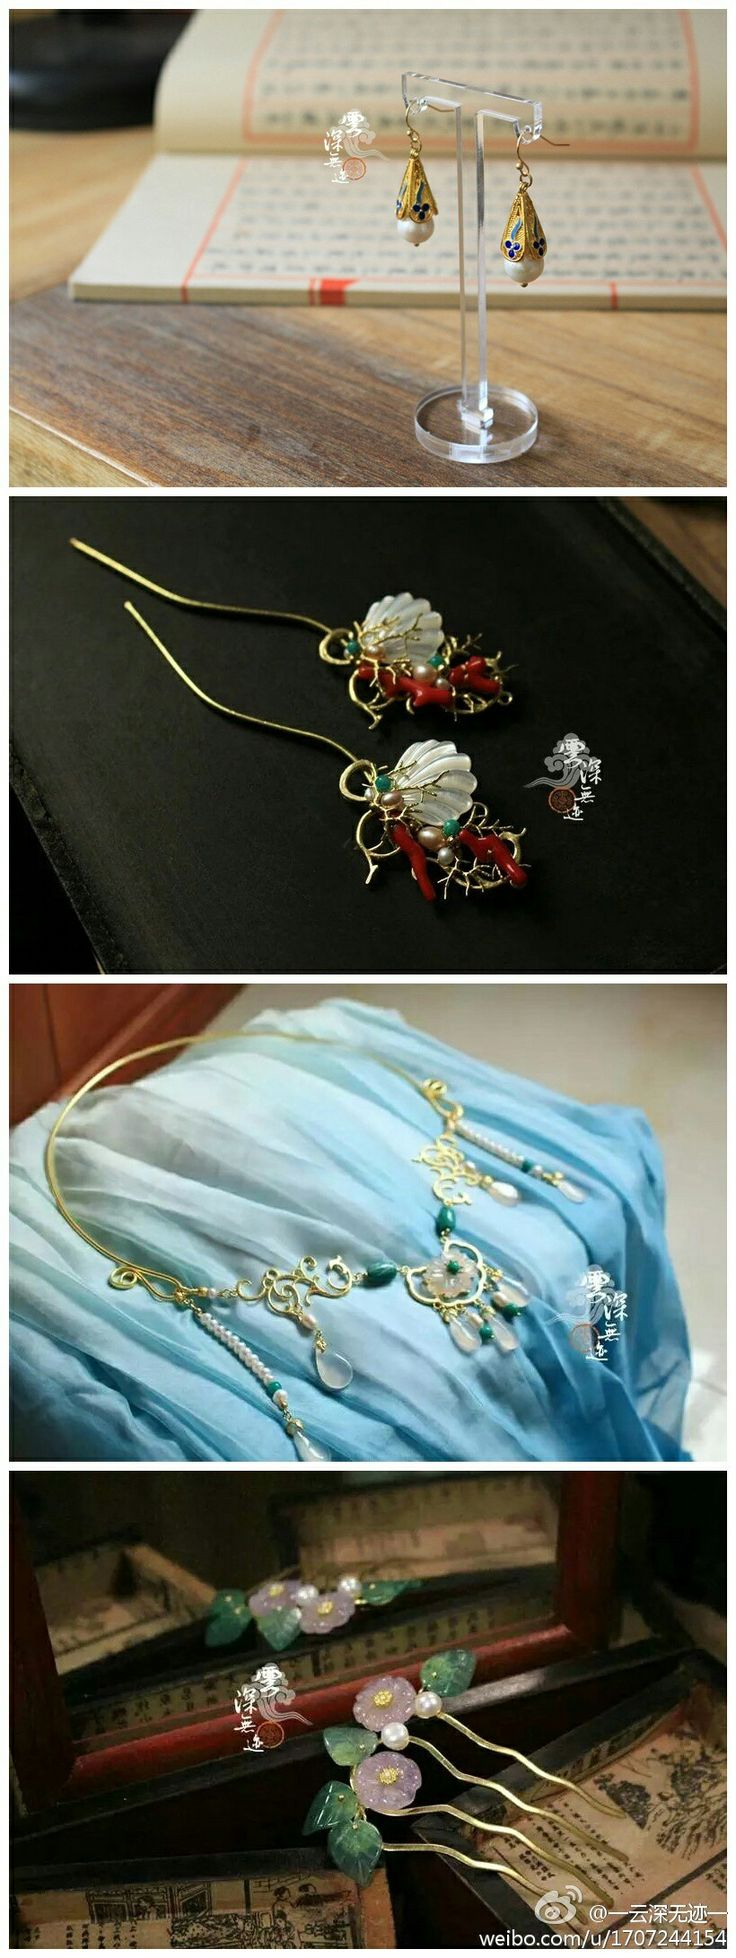 92 best chinese jewery images on Pinterest   Jewelry ideas ...